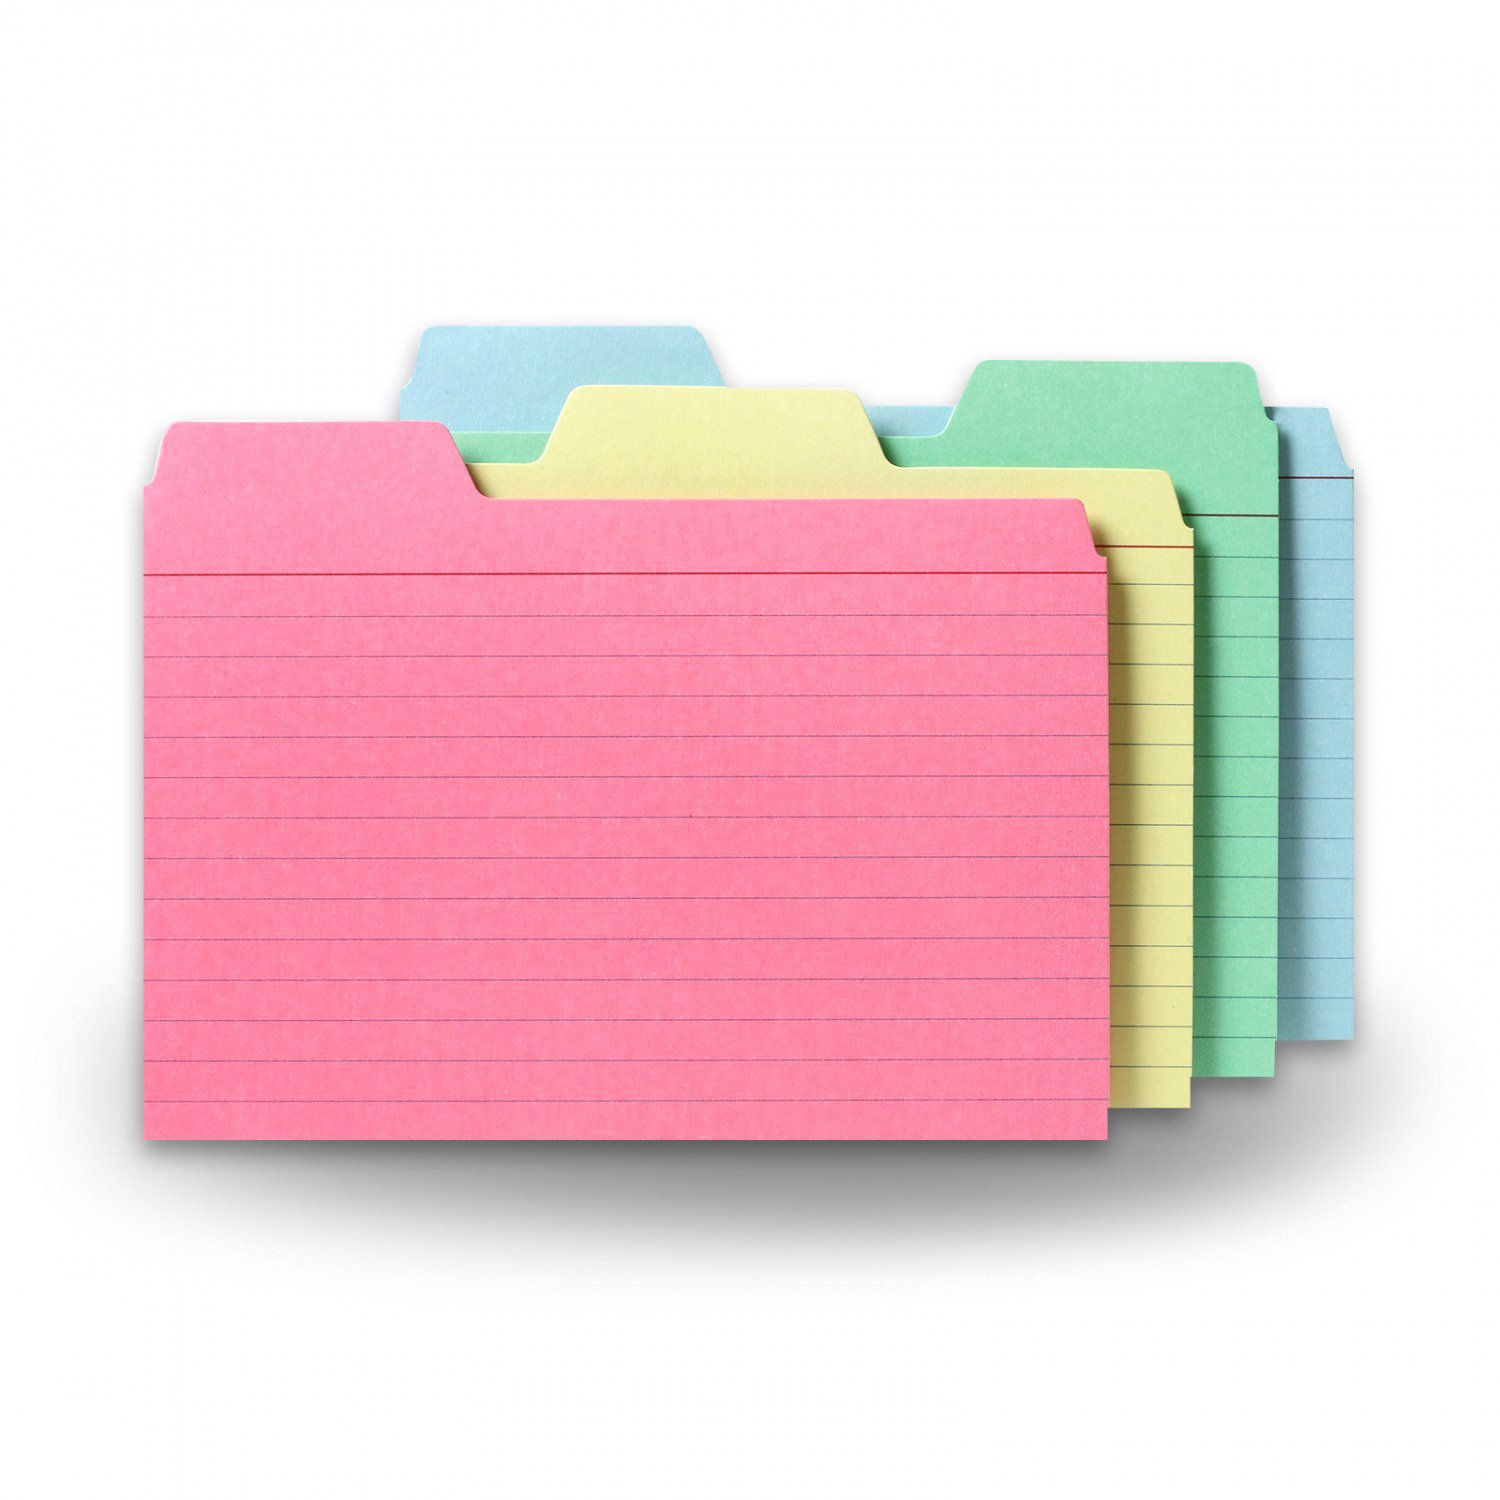 Find-It Tabbed Index Cards, 4 x 6 Inches, Assorted Colors, 48-Pack (FT07218)